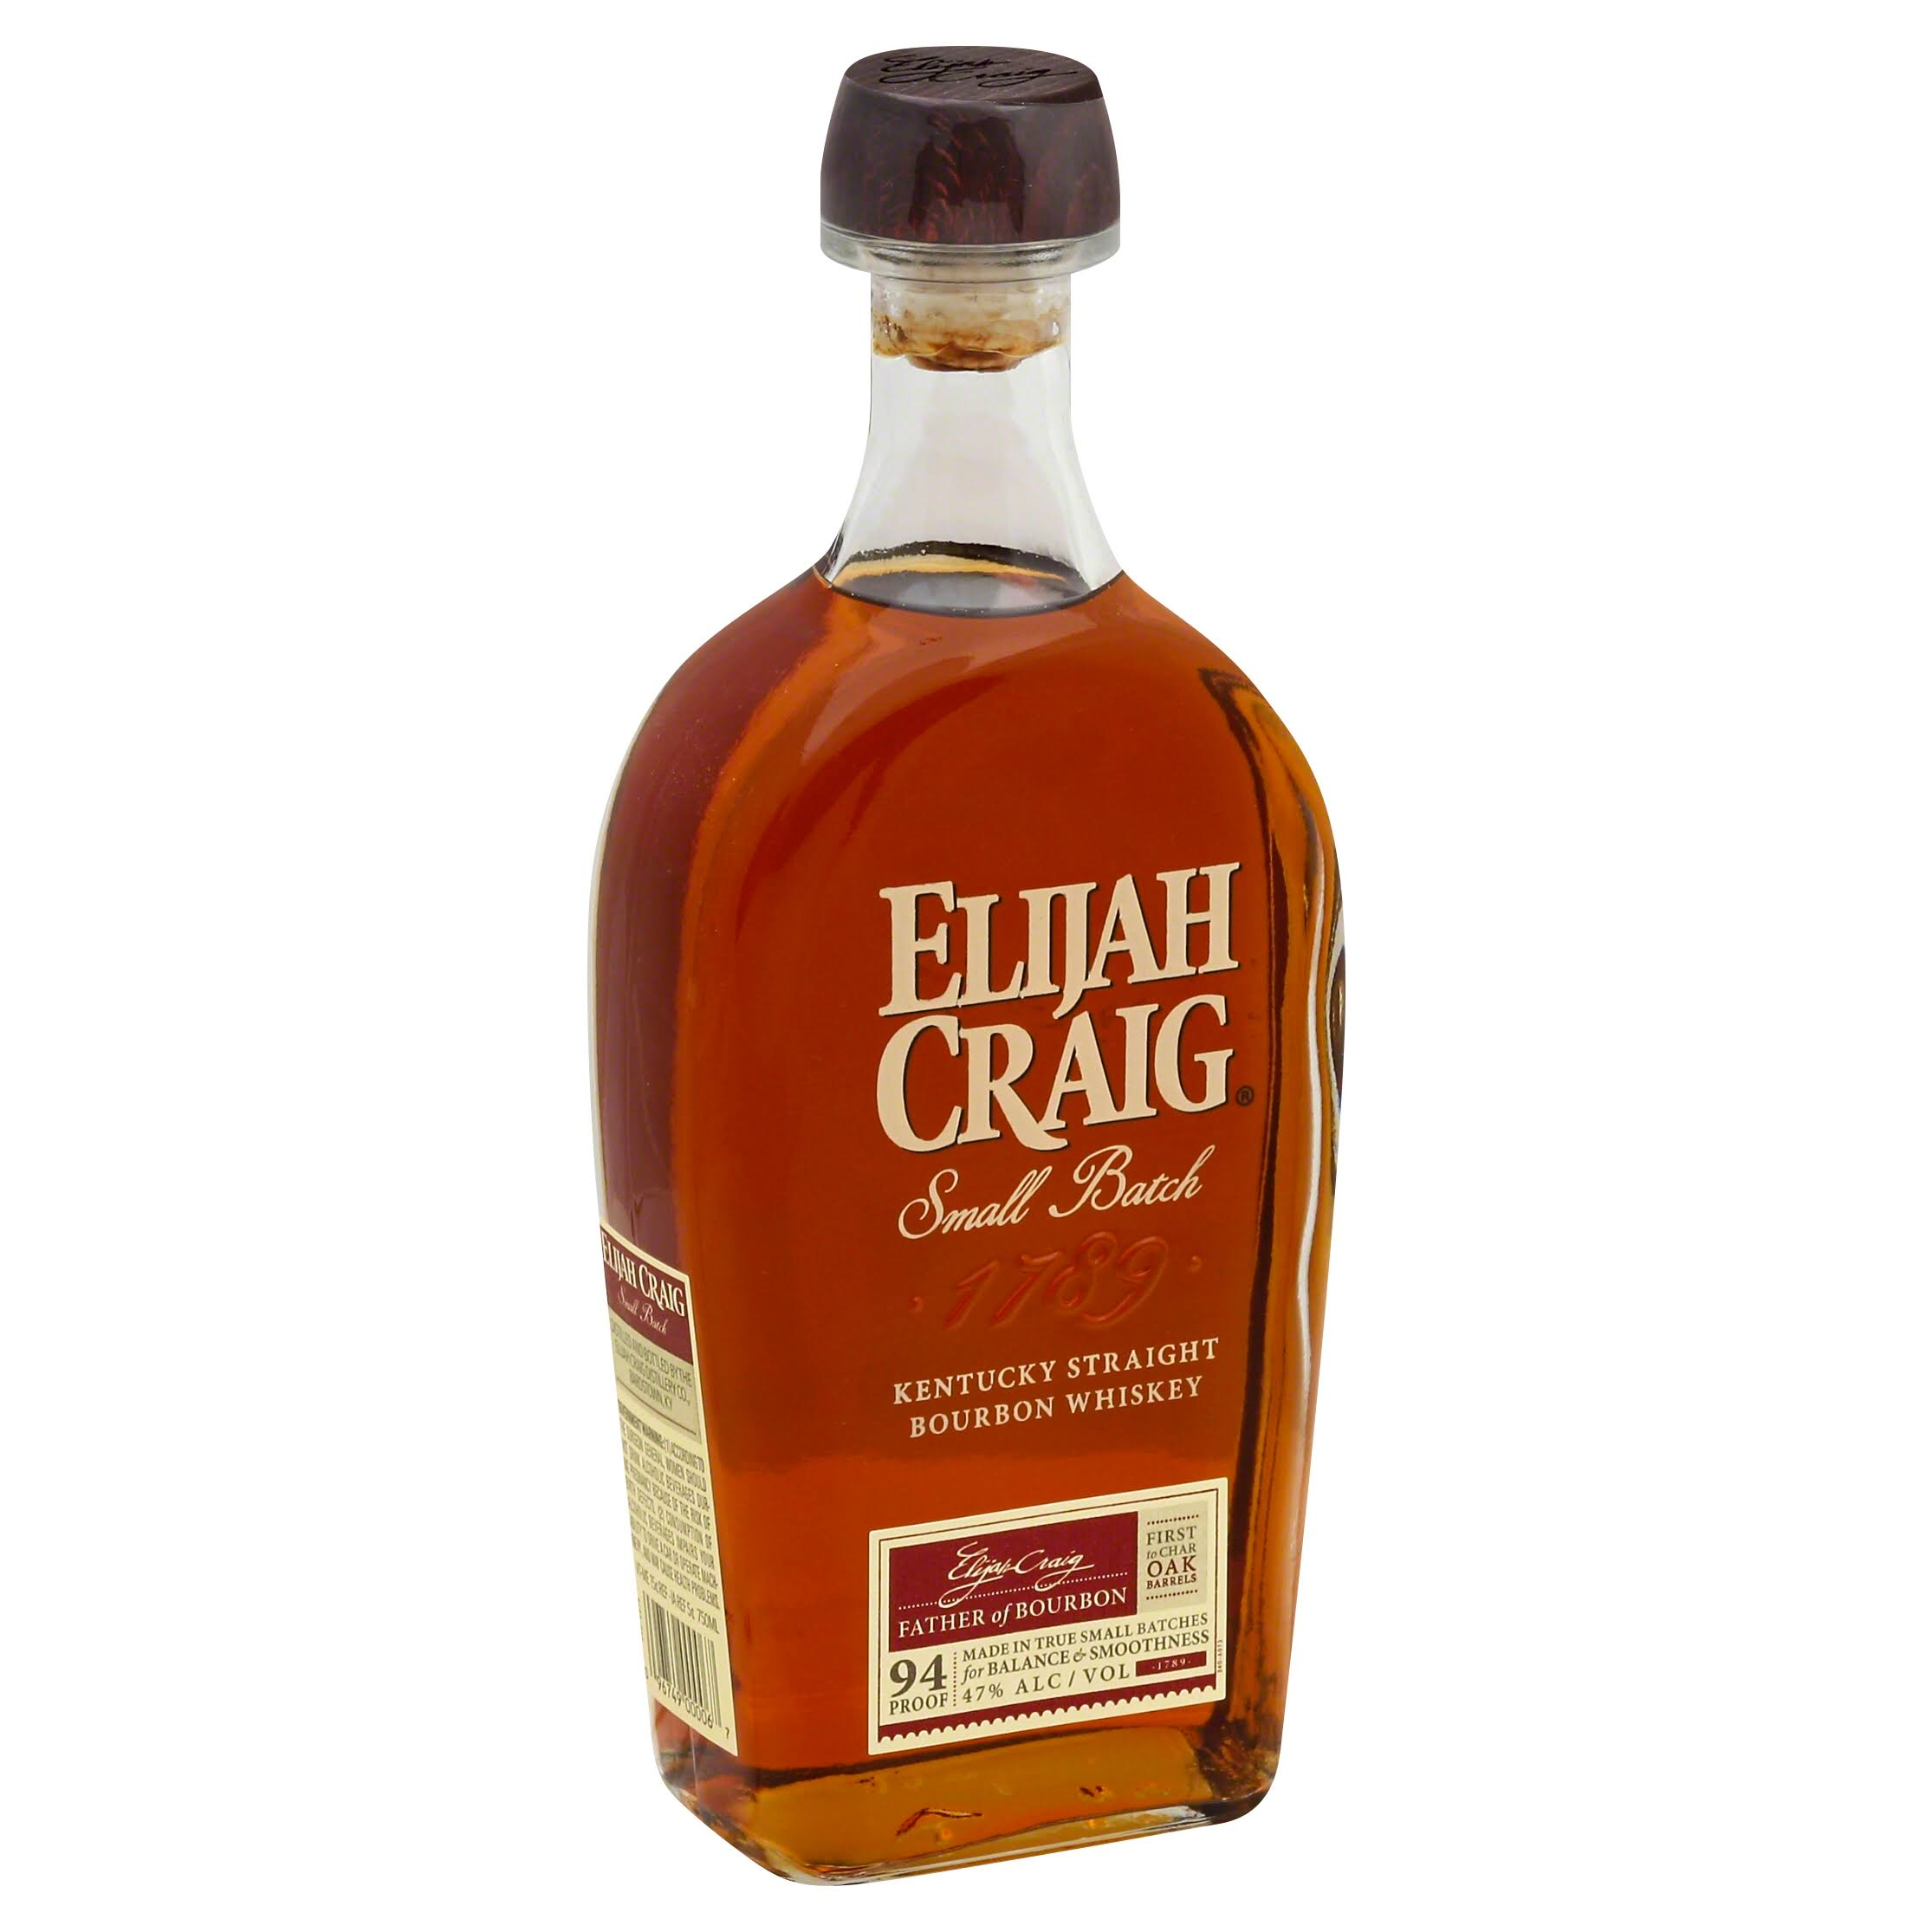 Elijah Craig Small Batch Kentucky Straight Bourbon Whiskey - 700ml